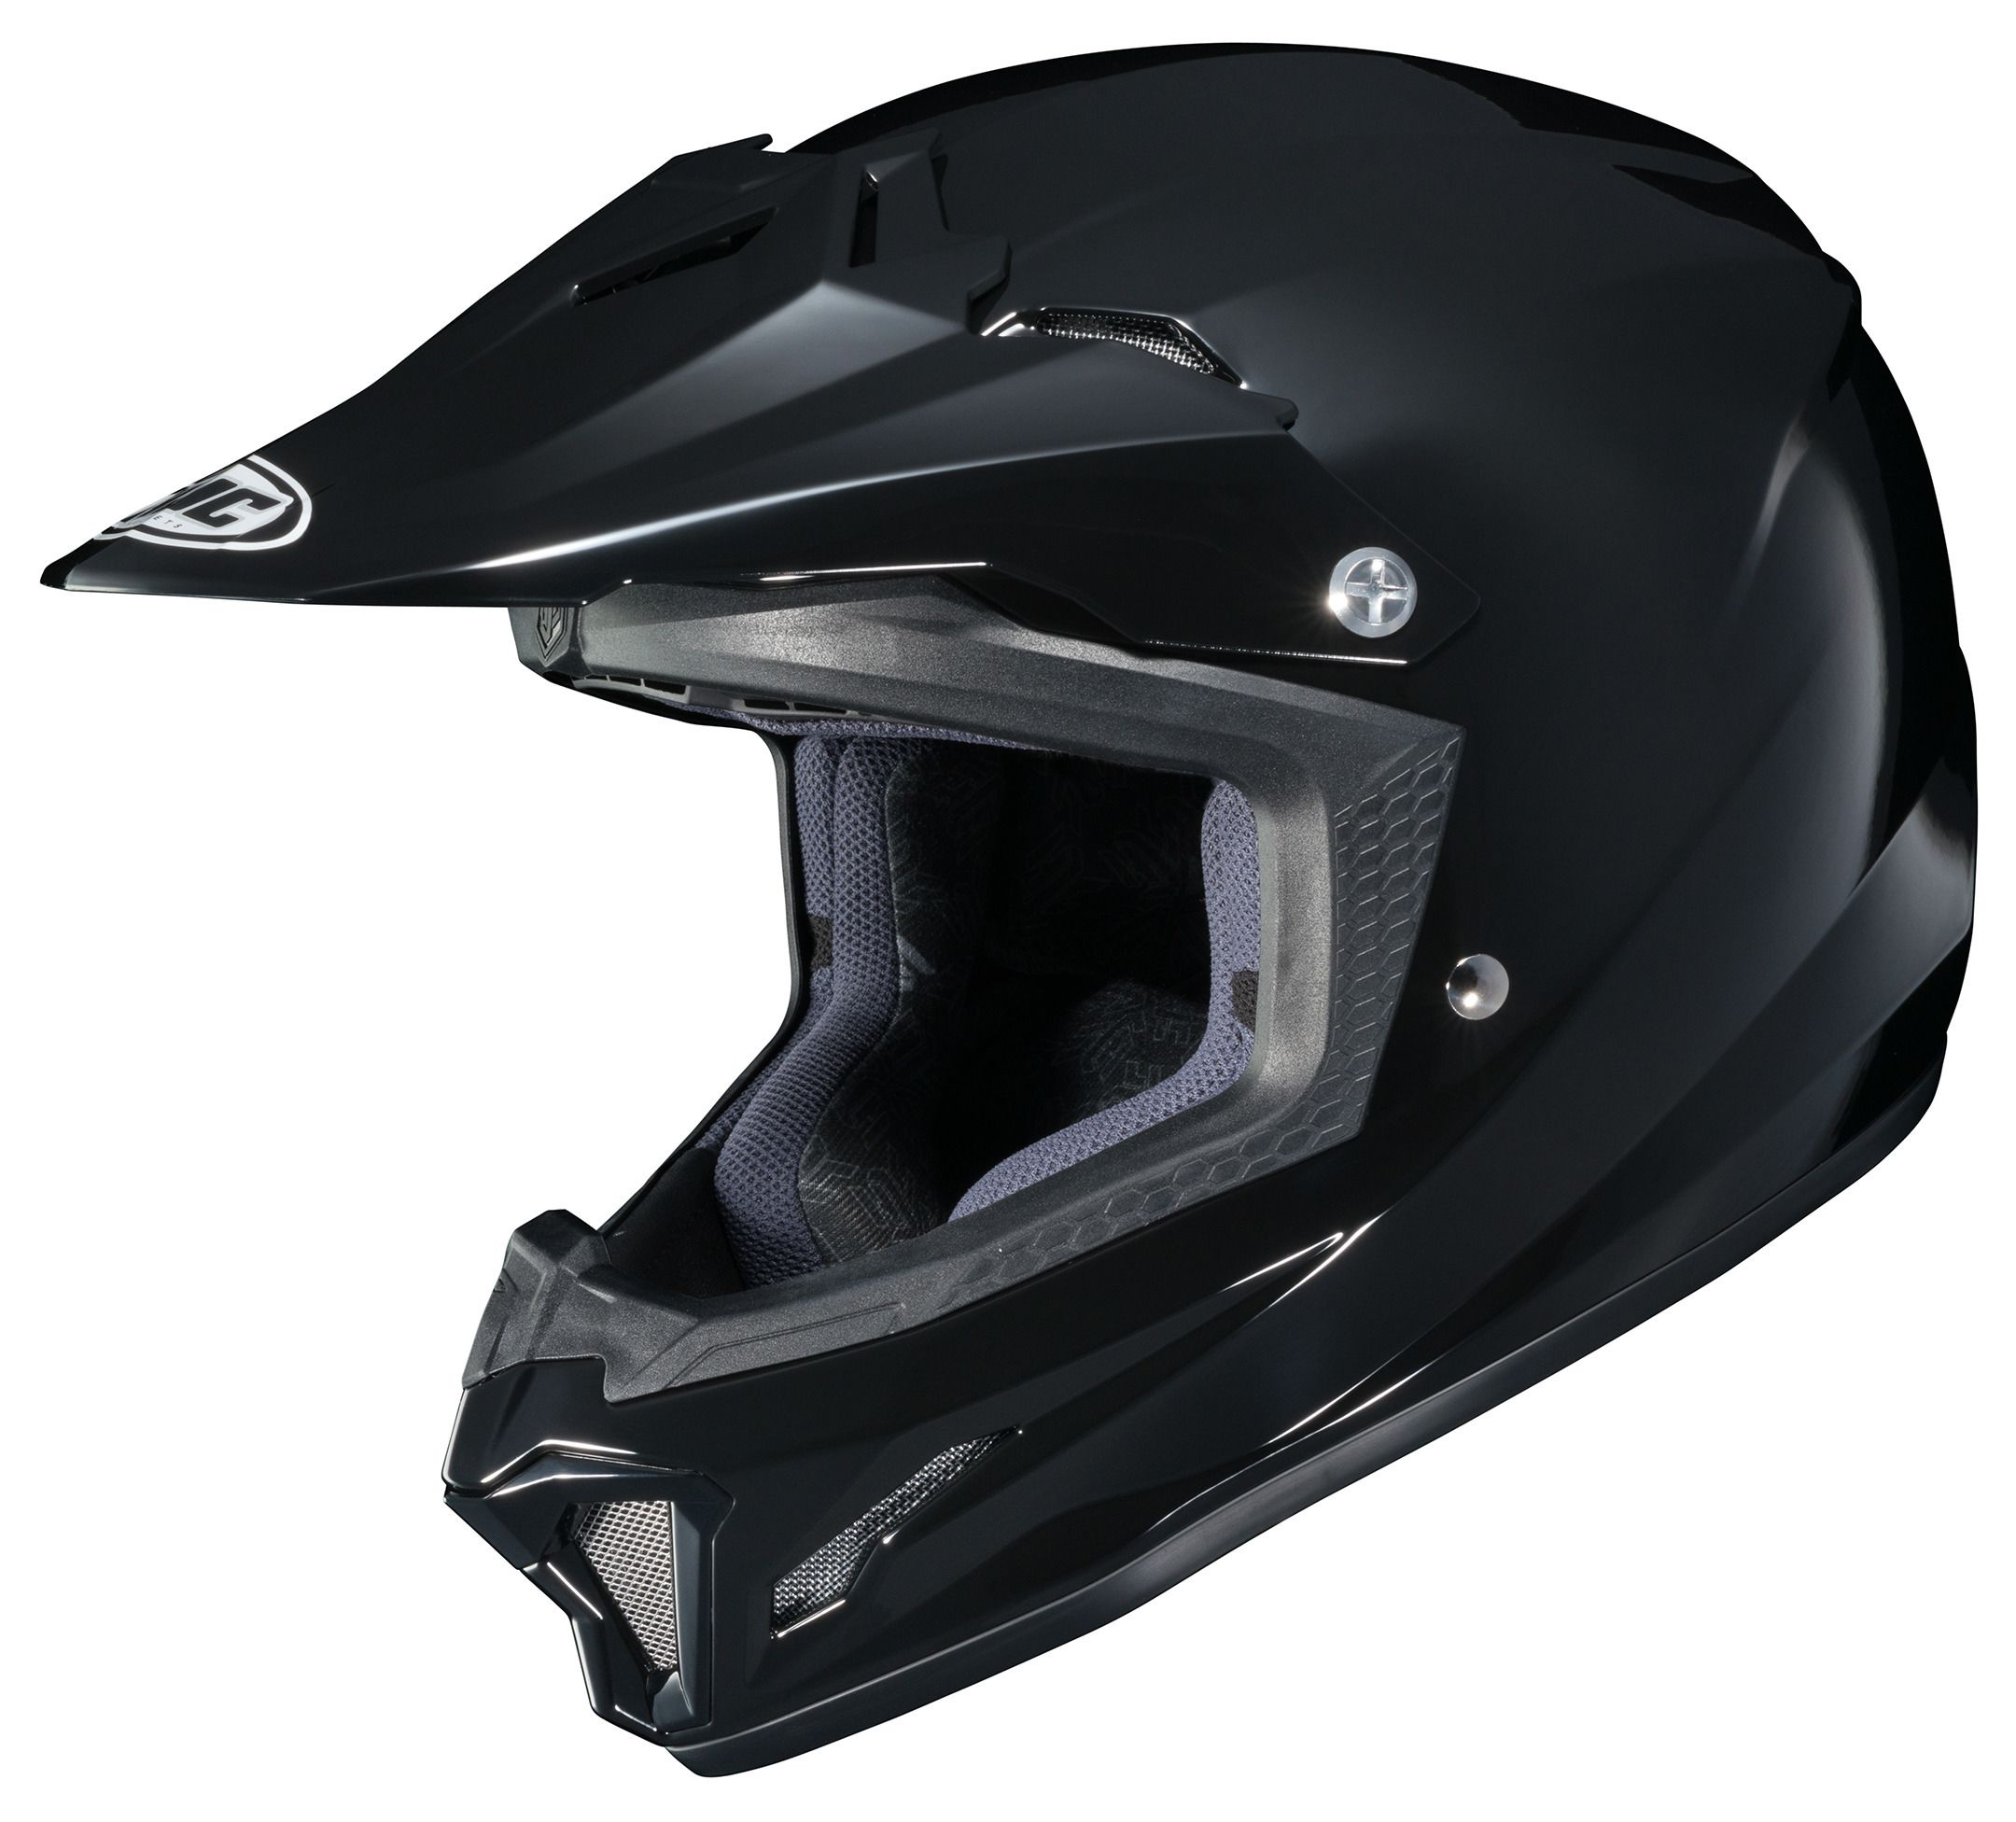 Amazoncom HJC CLY Youth Motorcycle Helmet Black